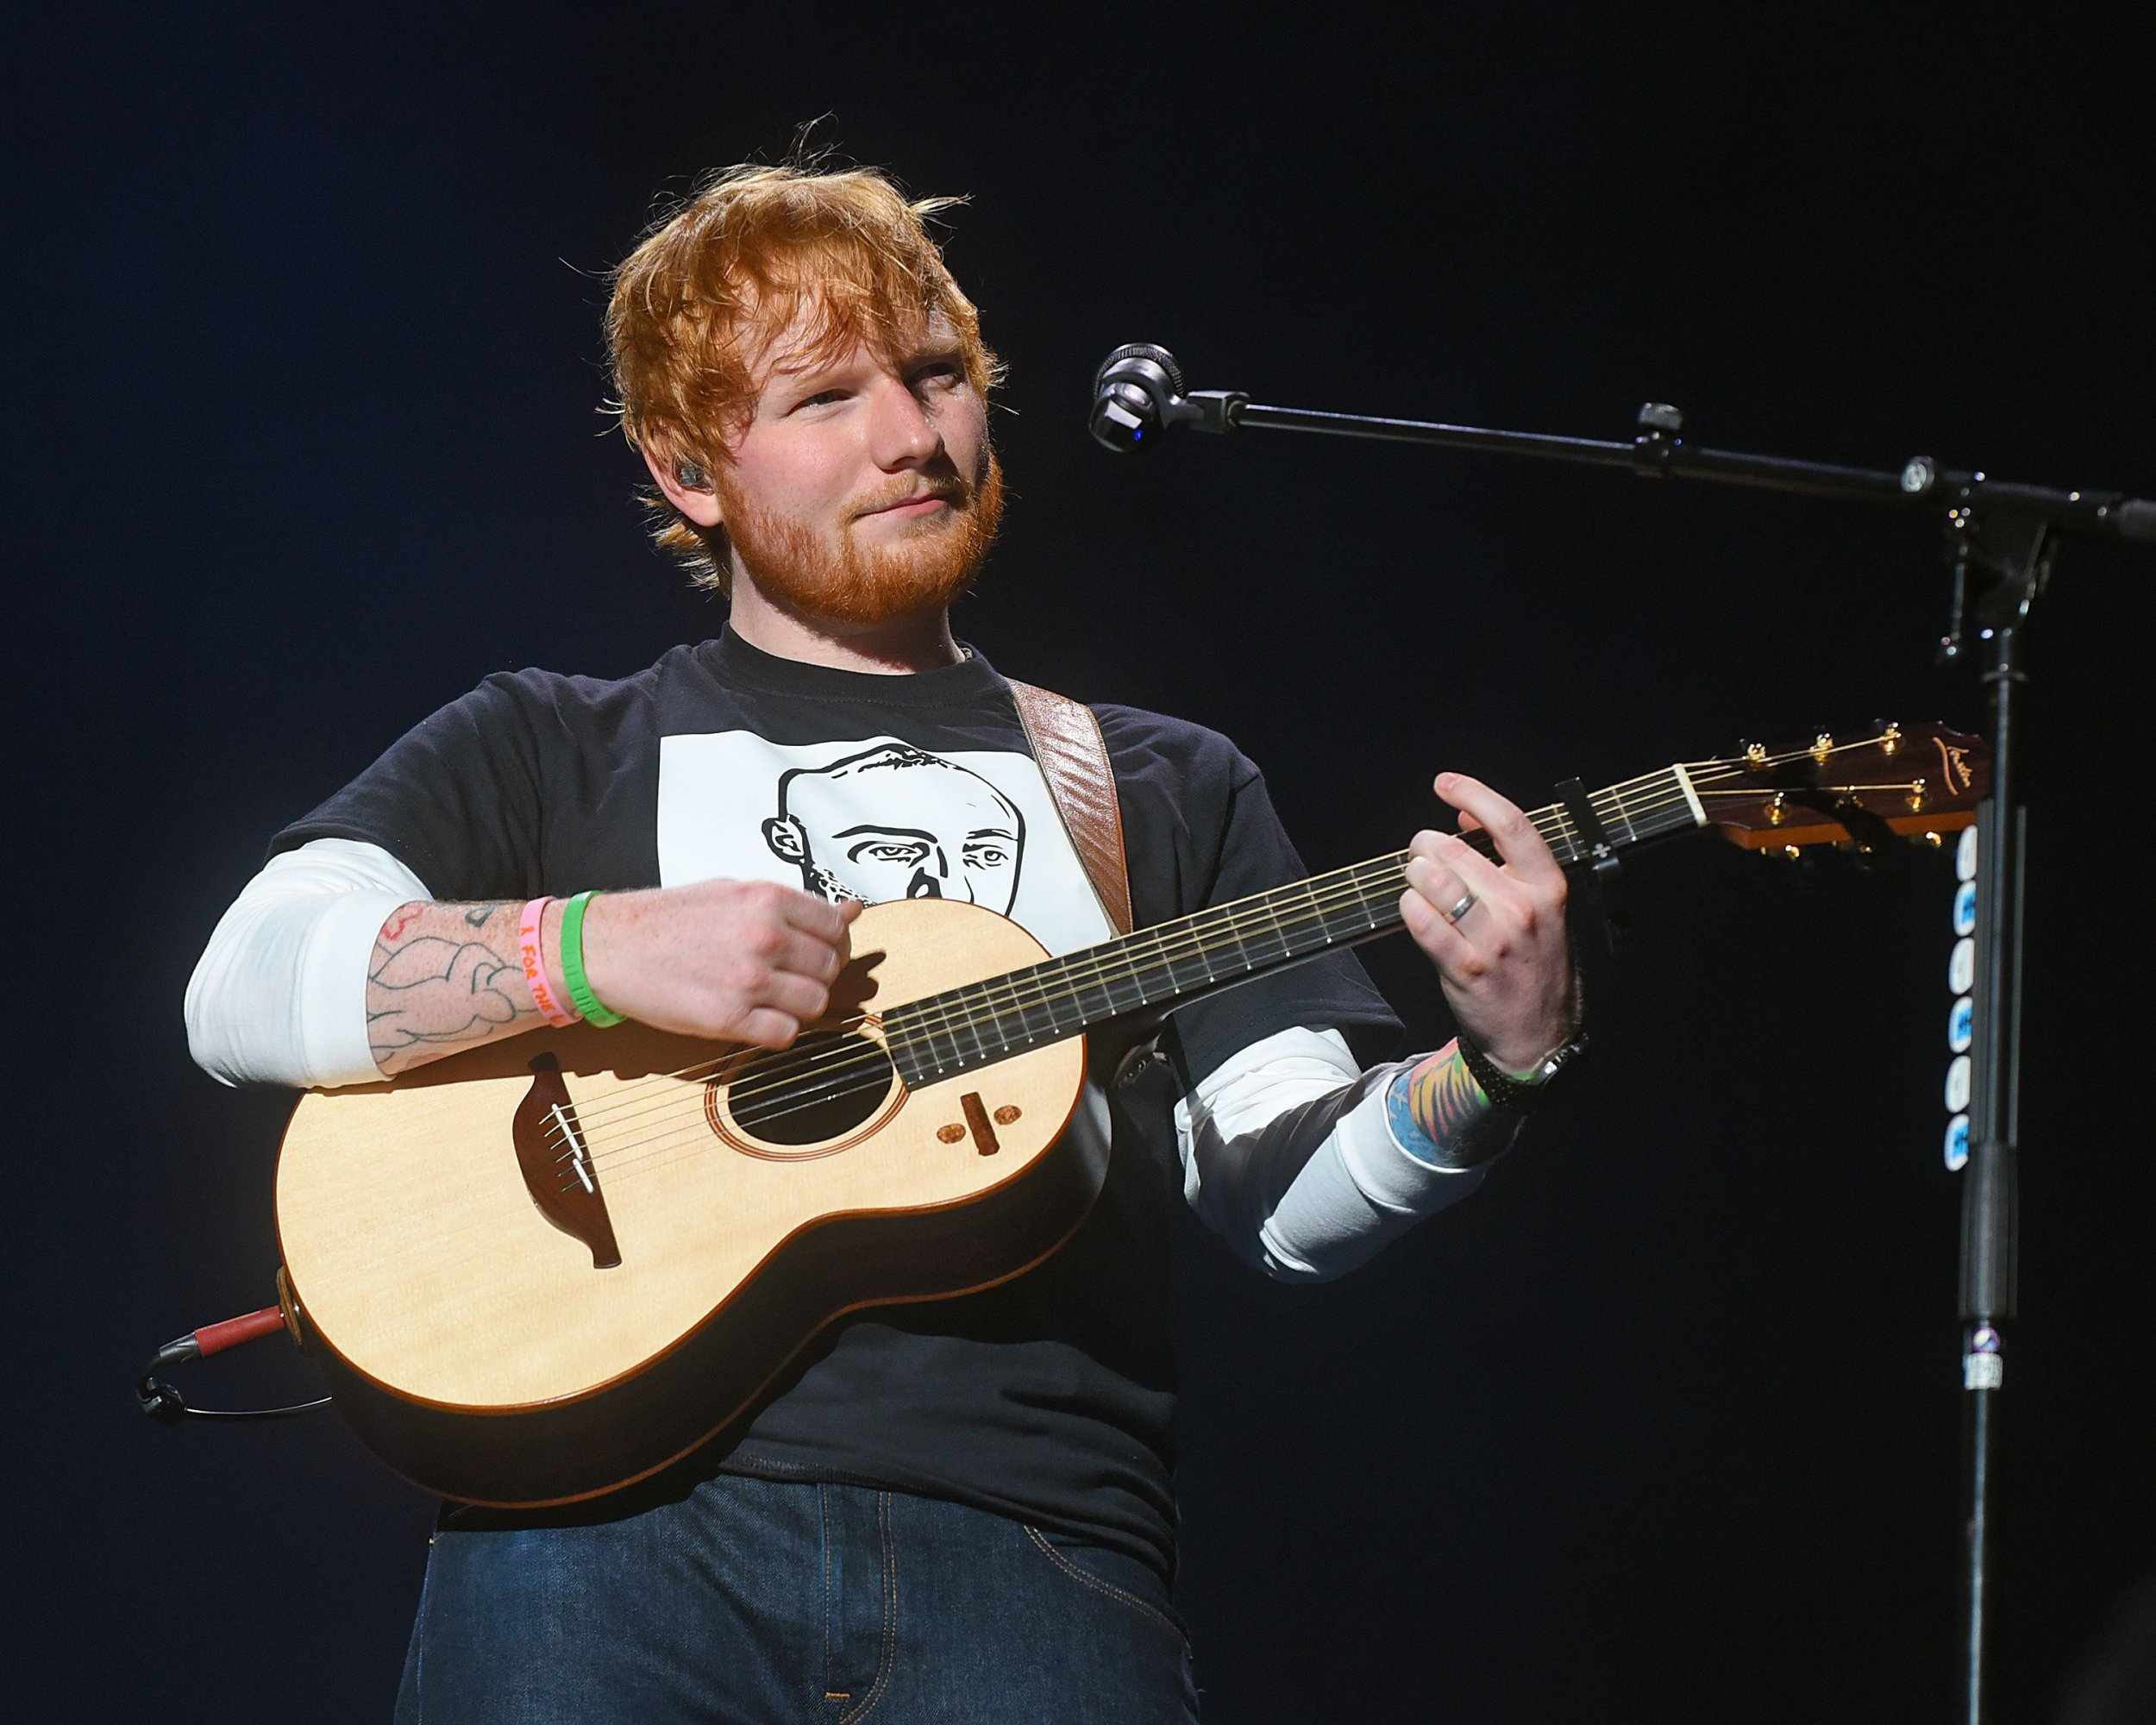 Mandatory Credit: Photo by Action Press/REX/Shutterstock (9907716f) Ed Sheeran Ed Sheeran in concert, Pittsburgh, USA - 29 Sep 2018 Ed Sheeran pays tribute to Pittsburgh rapper Mac Miller by wearing a t-shirt depicting his face.